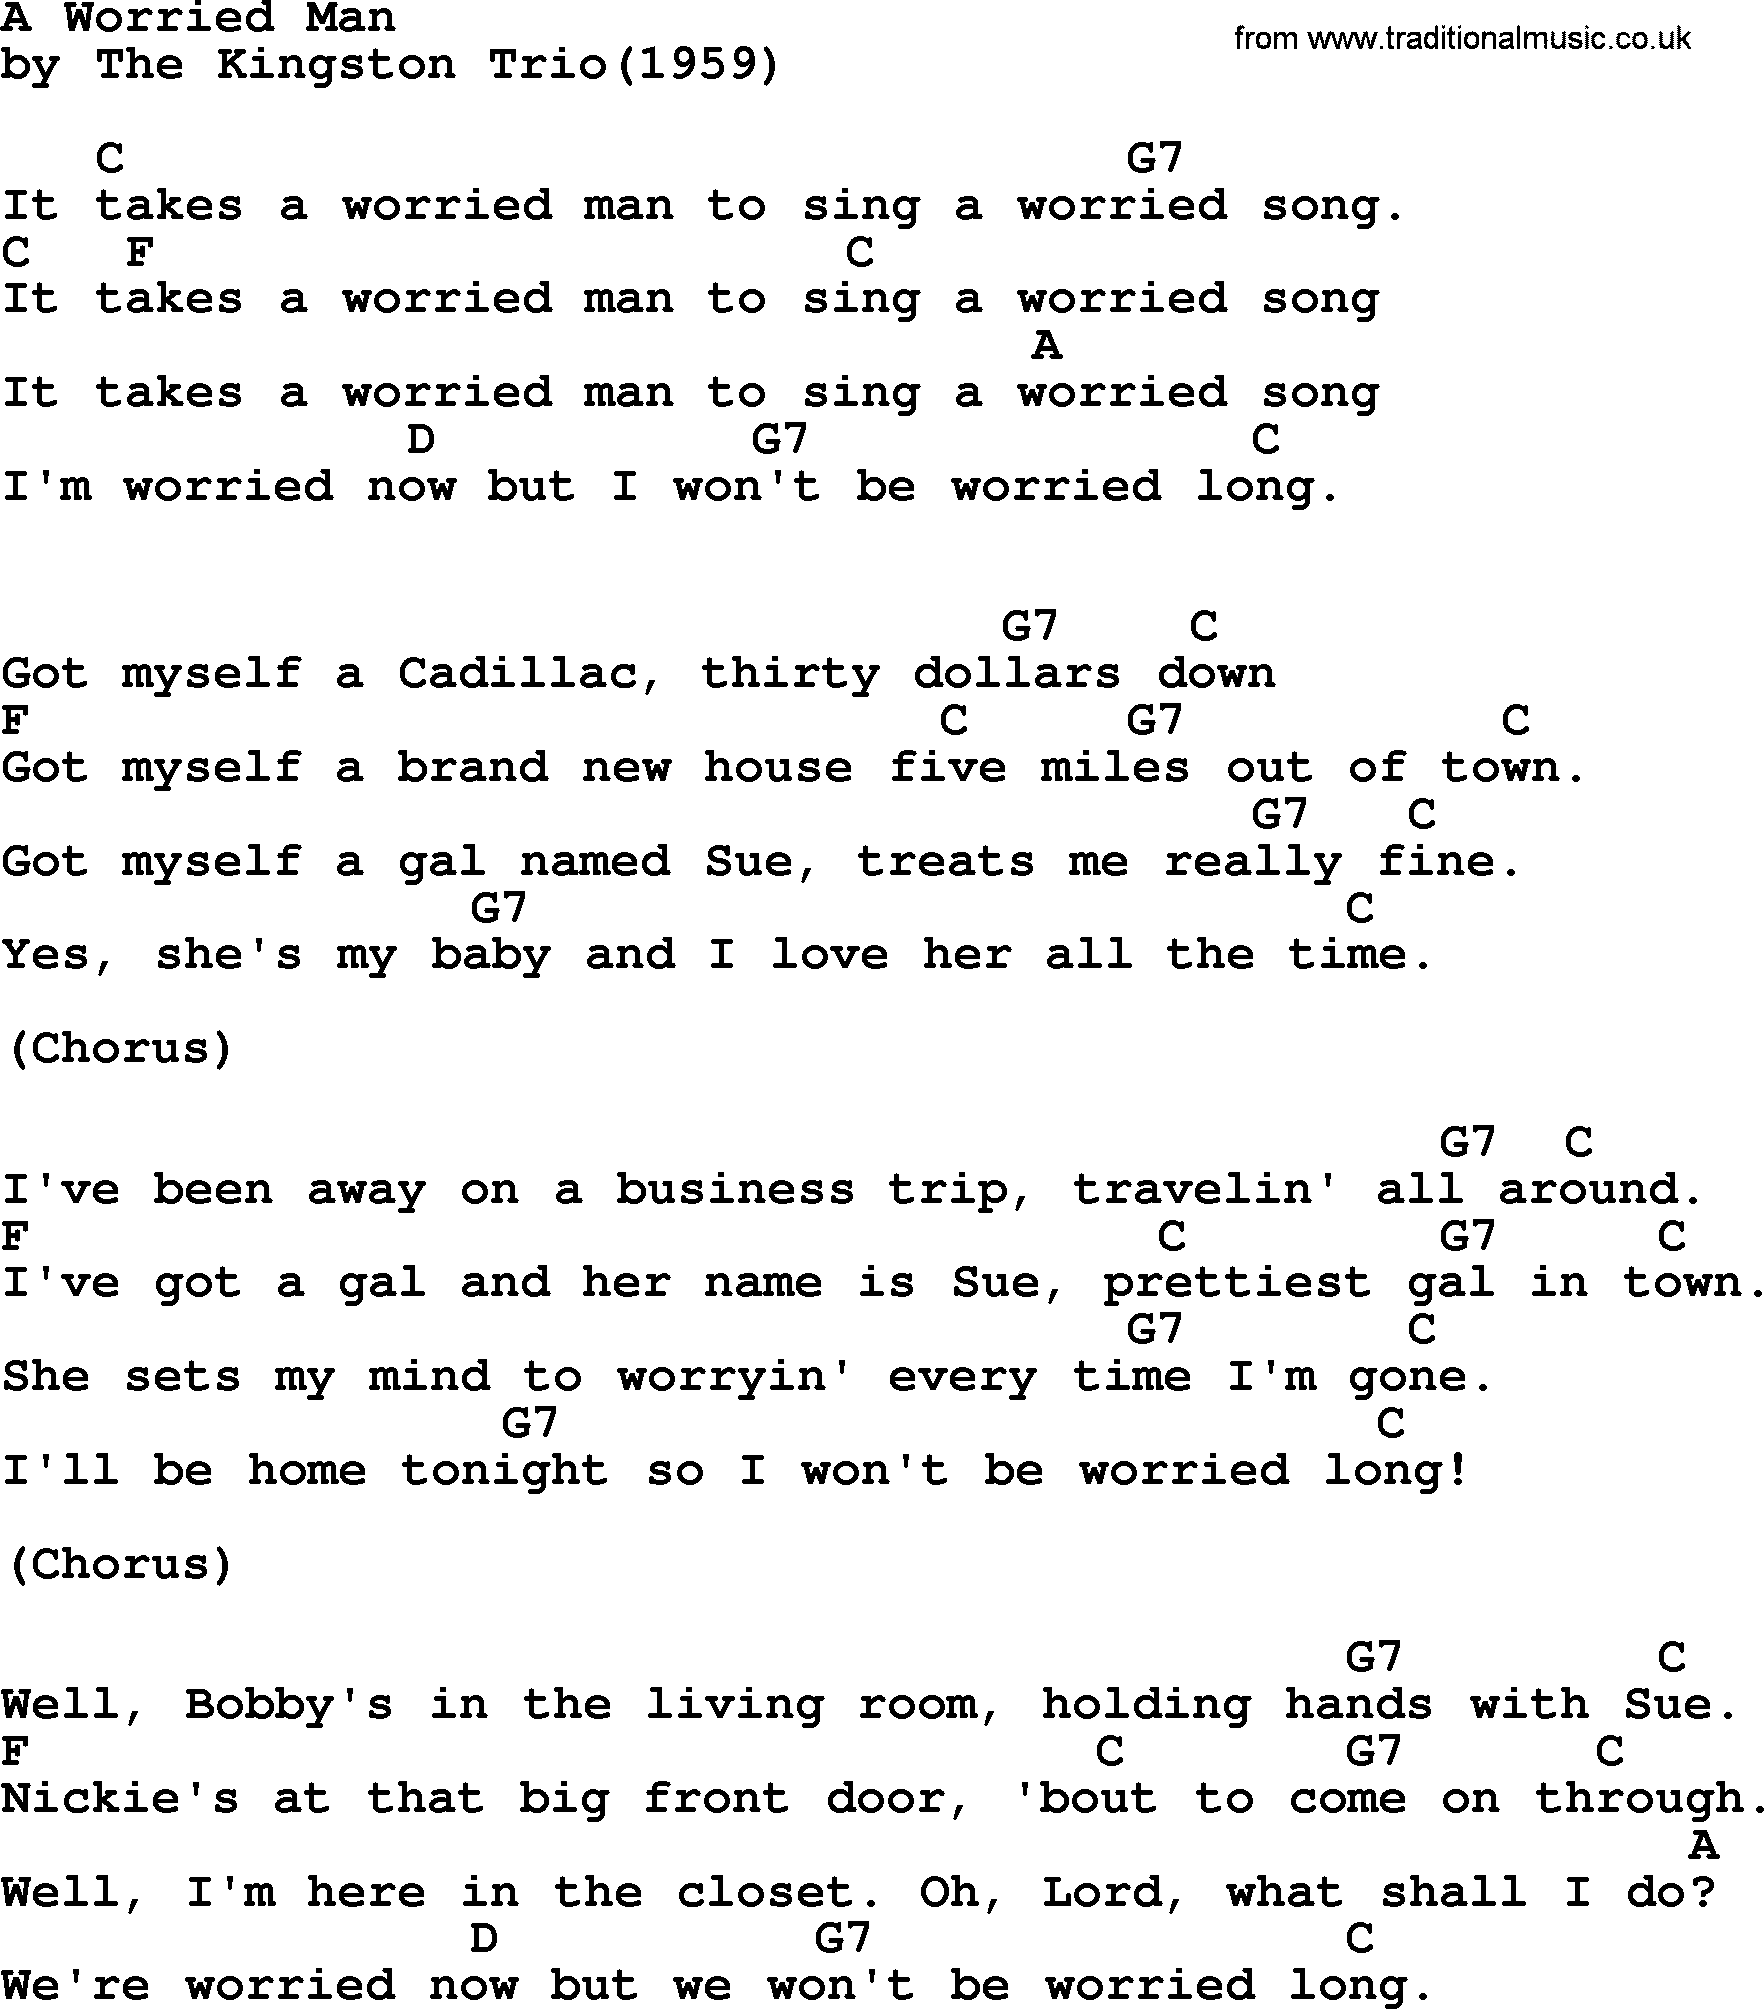 Kingston Trio song: A Worried Man, lyrics and chords